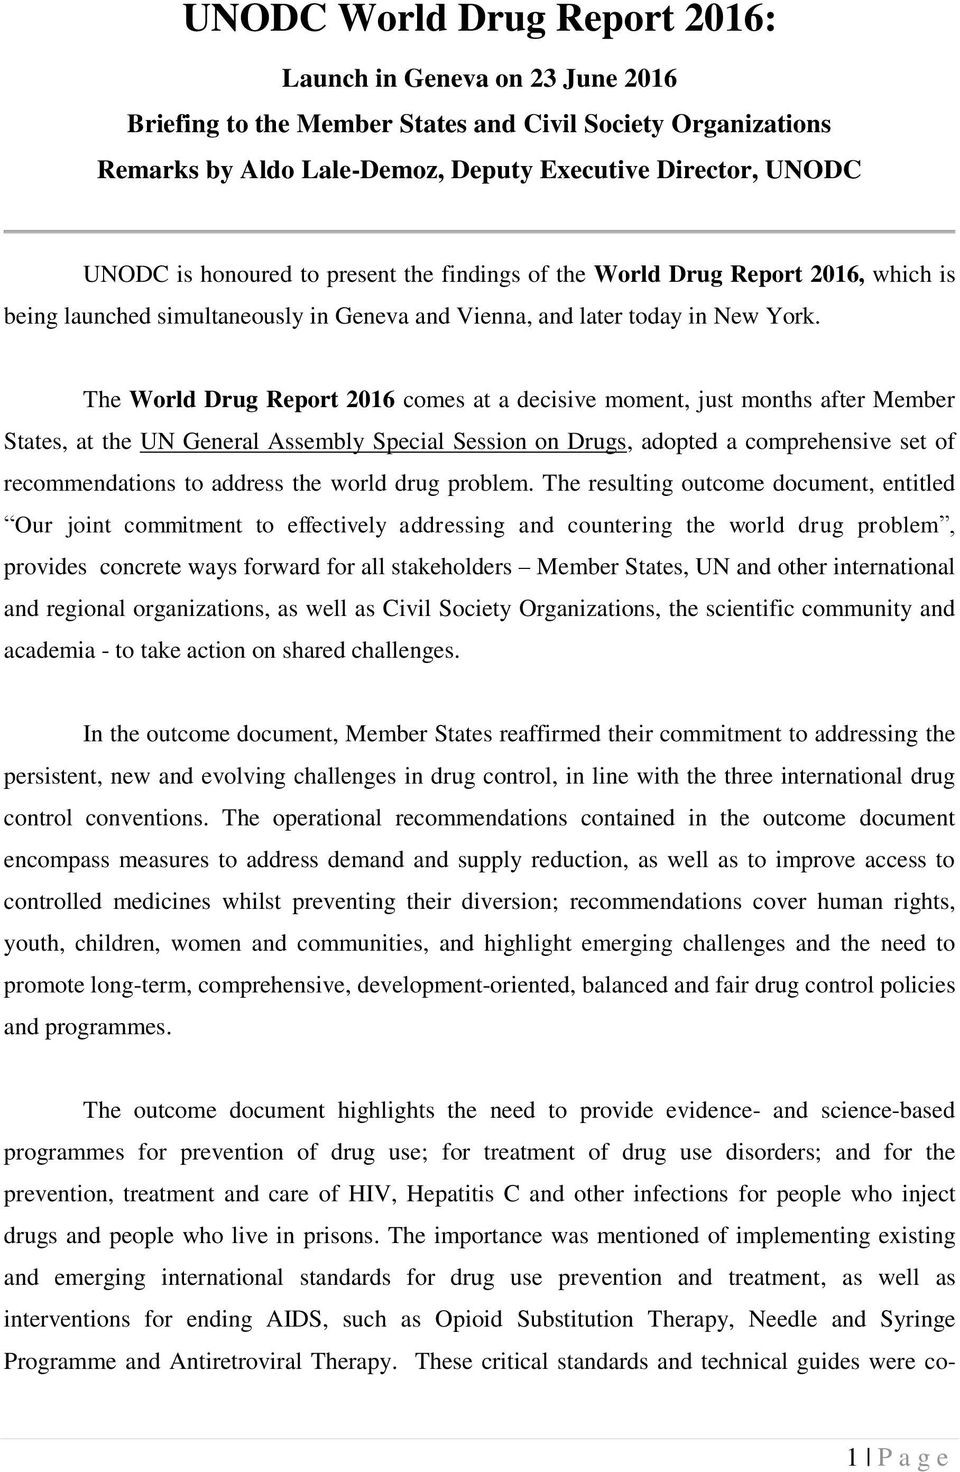 The World Drug Report 2016 comes at a decisive moment, just months after Member States, at the UN General Assembly Special Session on Drugs, adopted a comprehensive set of recommendations to address